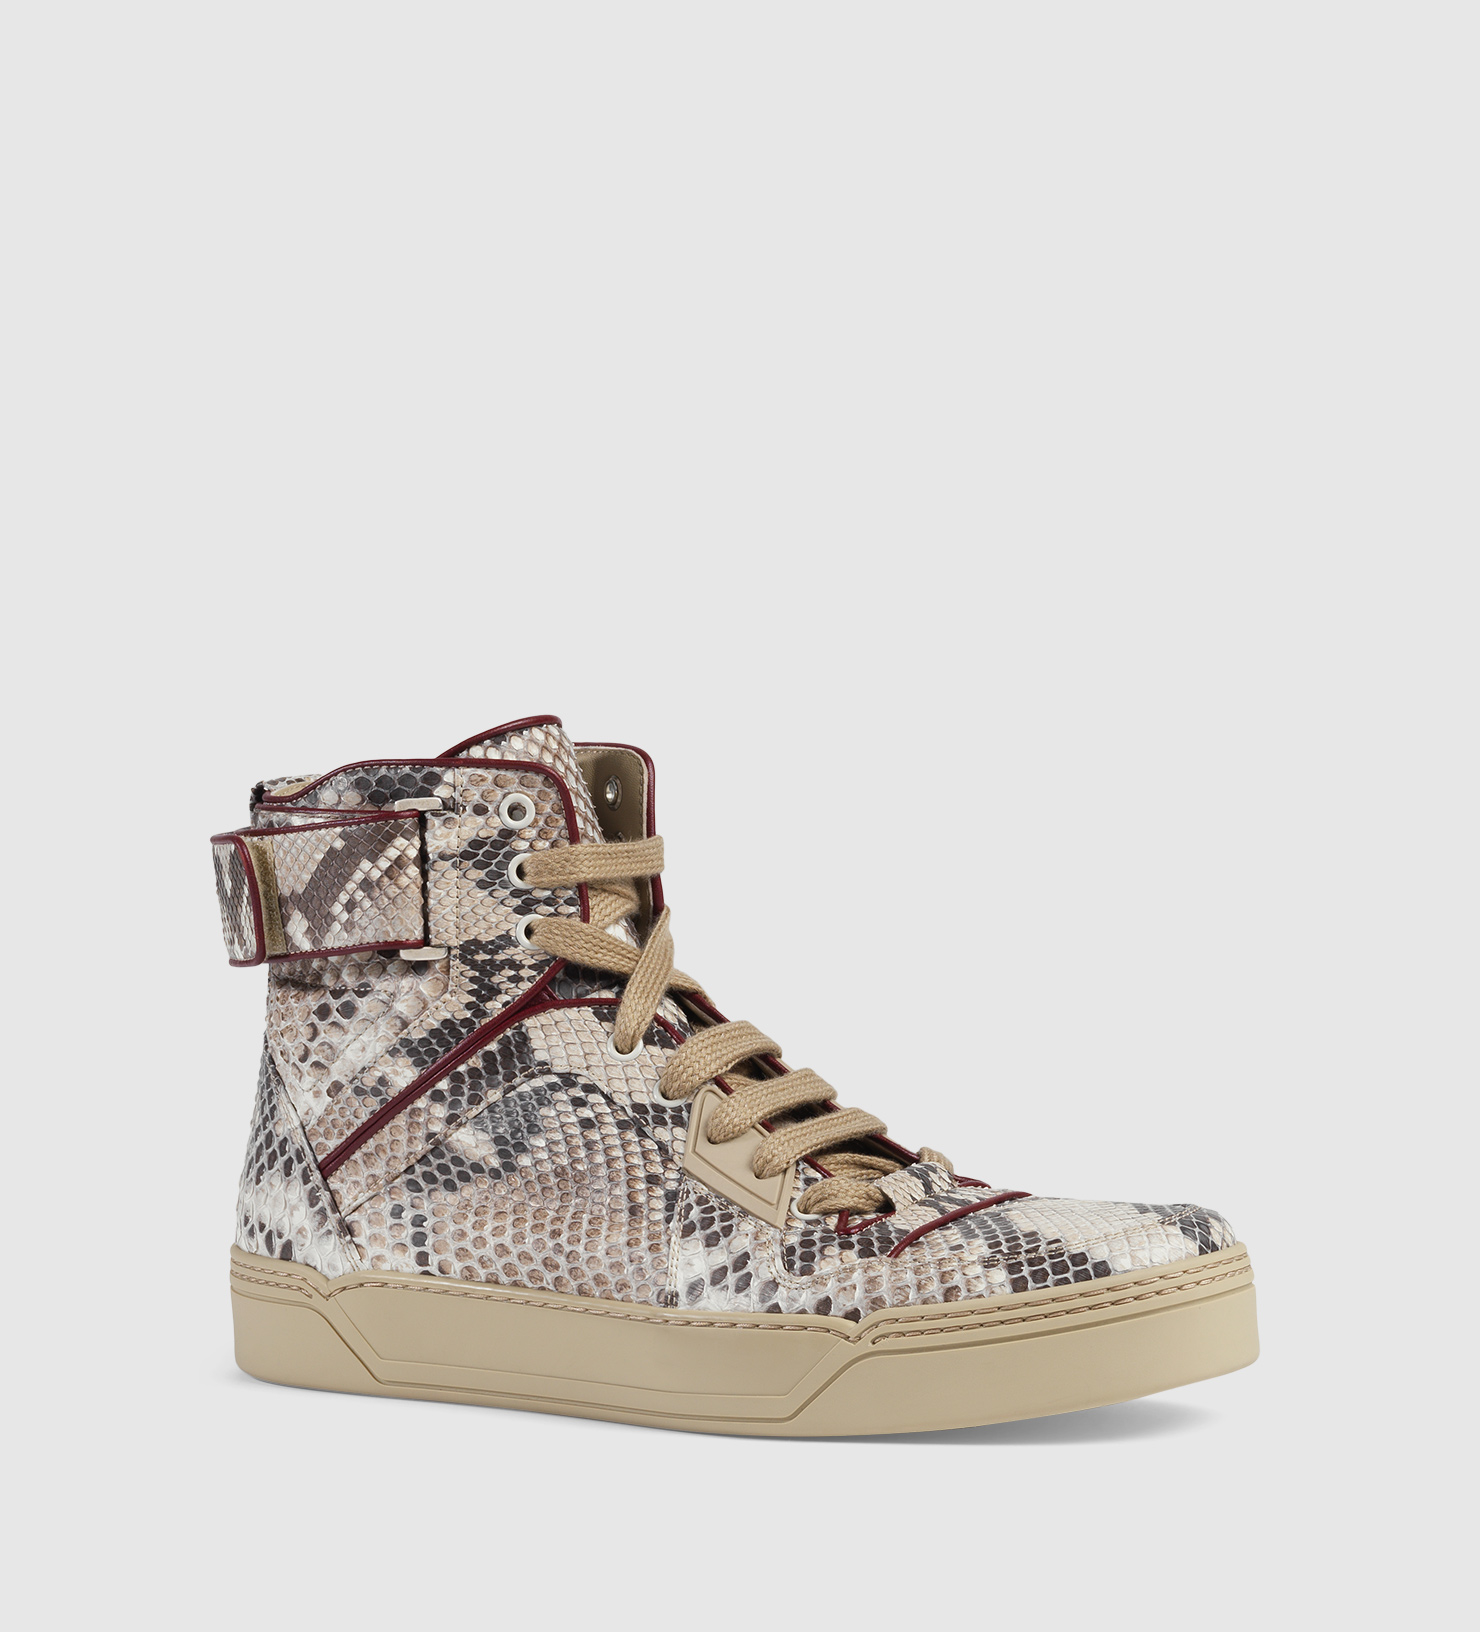 1f5e96fc1ab Lyst - Gucci Exclusive Python High-top Sneaker in Gray for Men